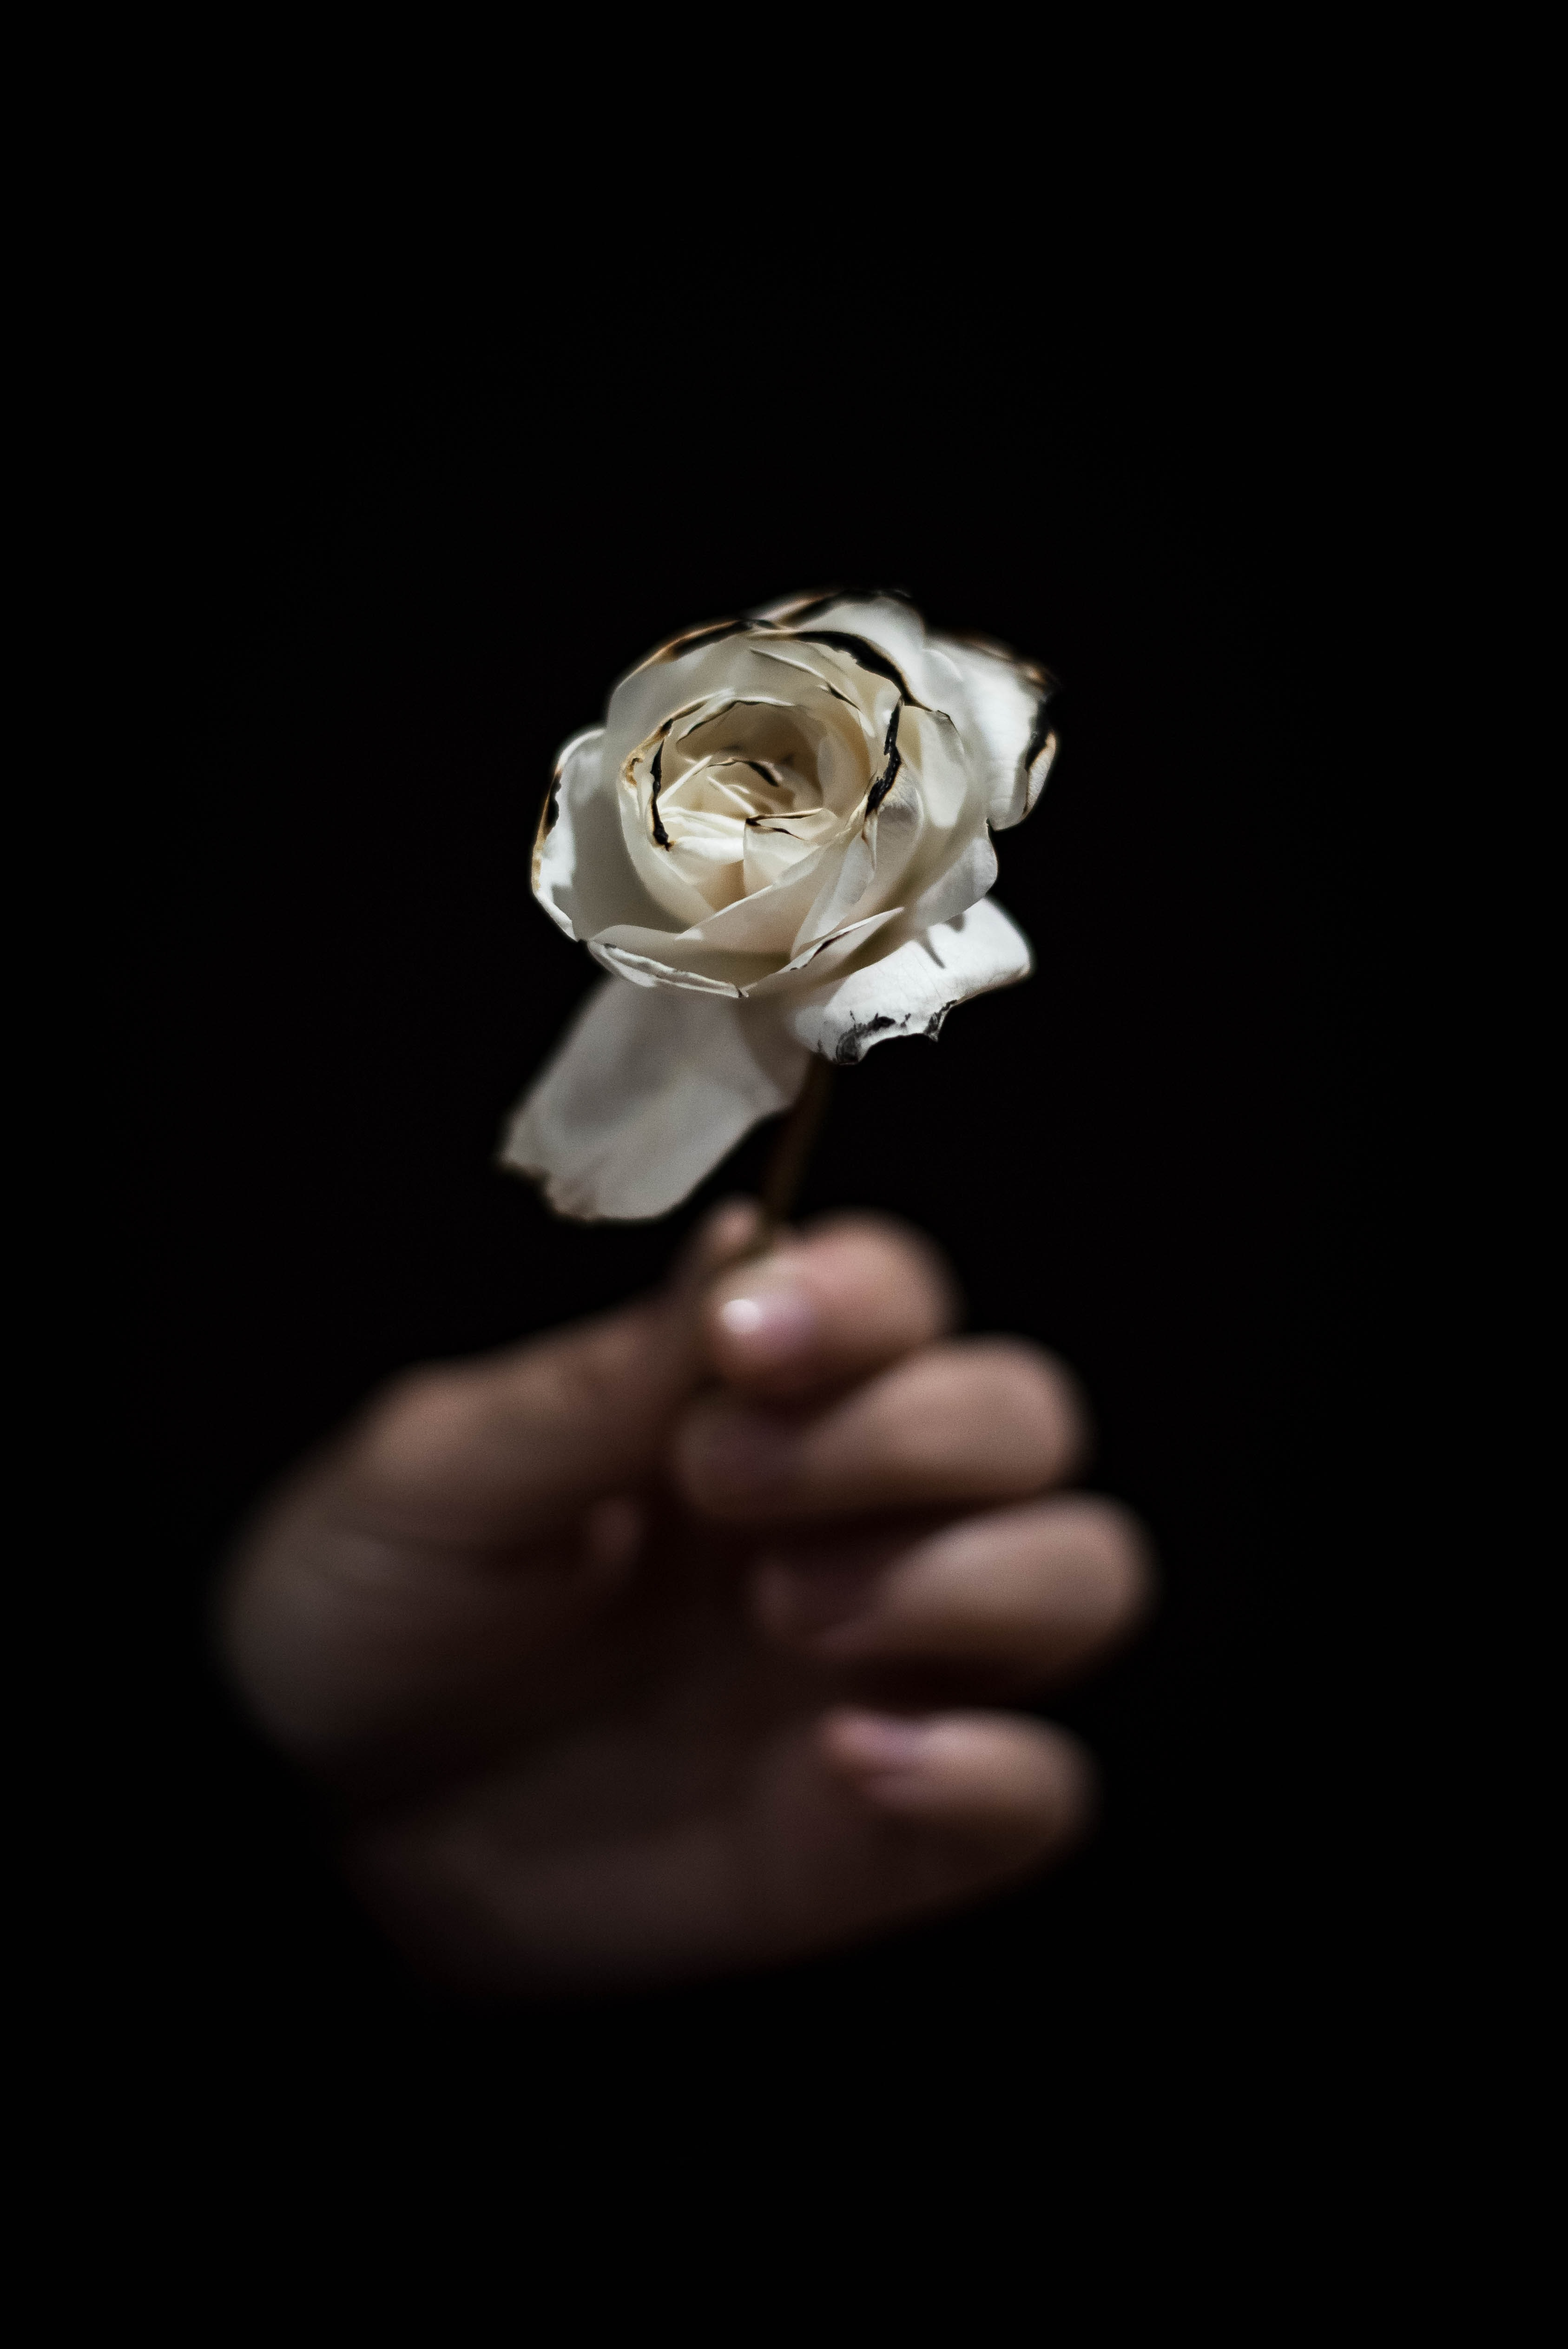 person holding white rose